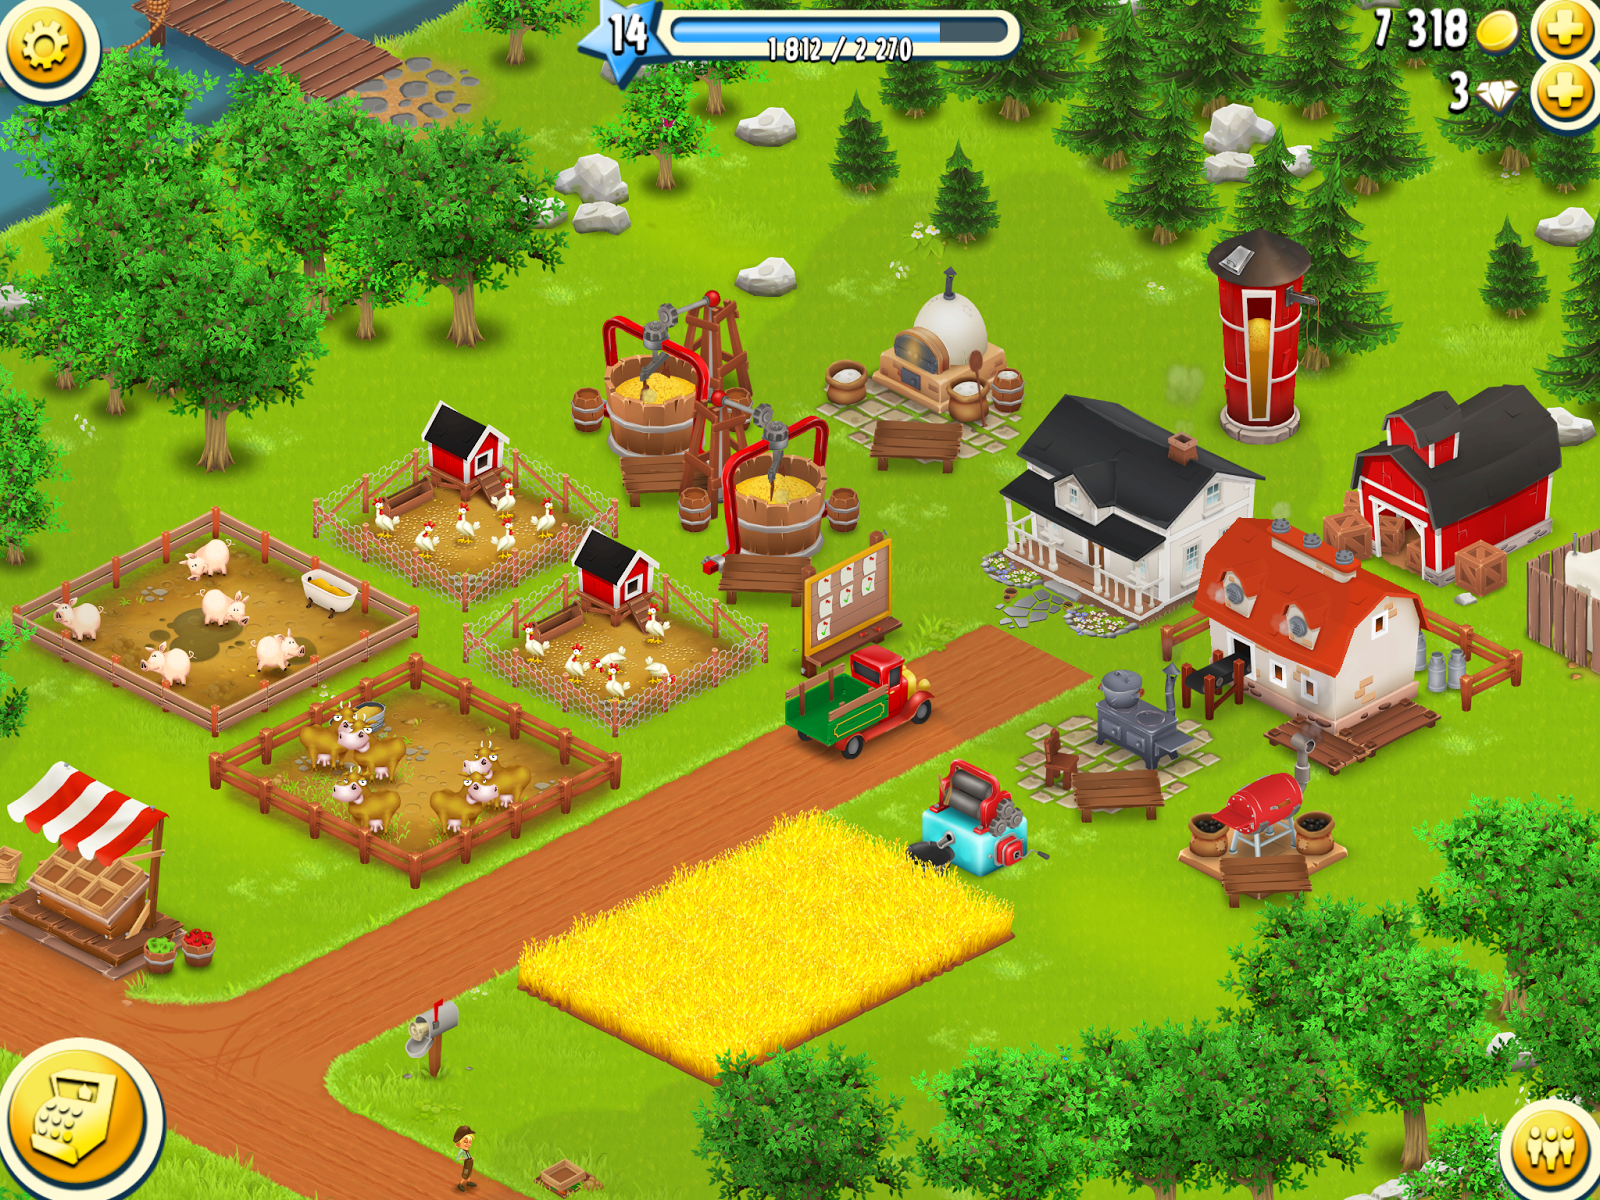 Descarga gratis Hay Day